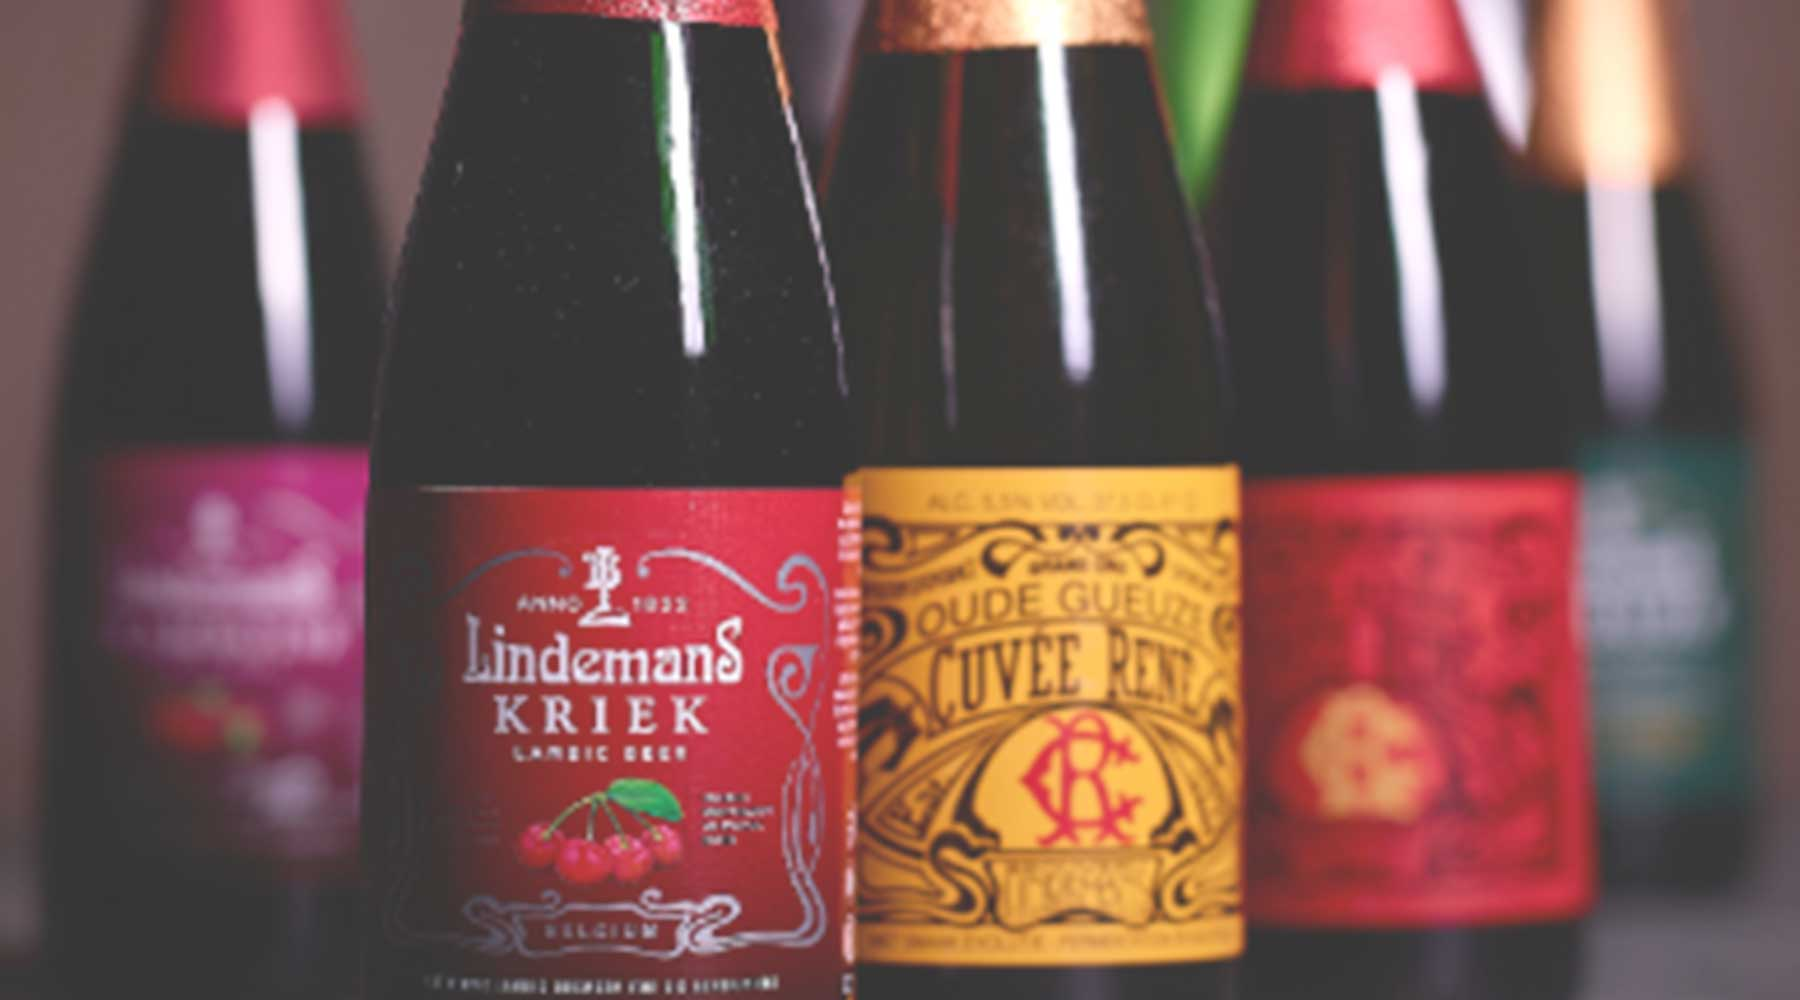 Lindemans | Just Wine